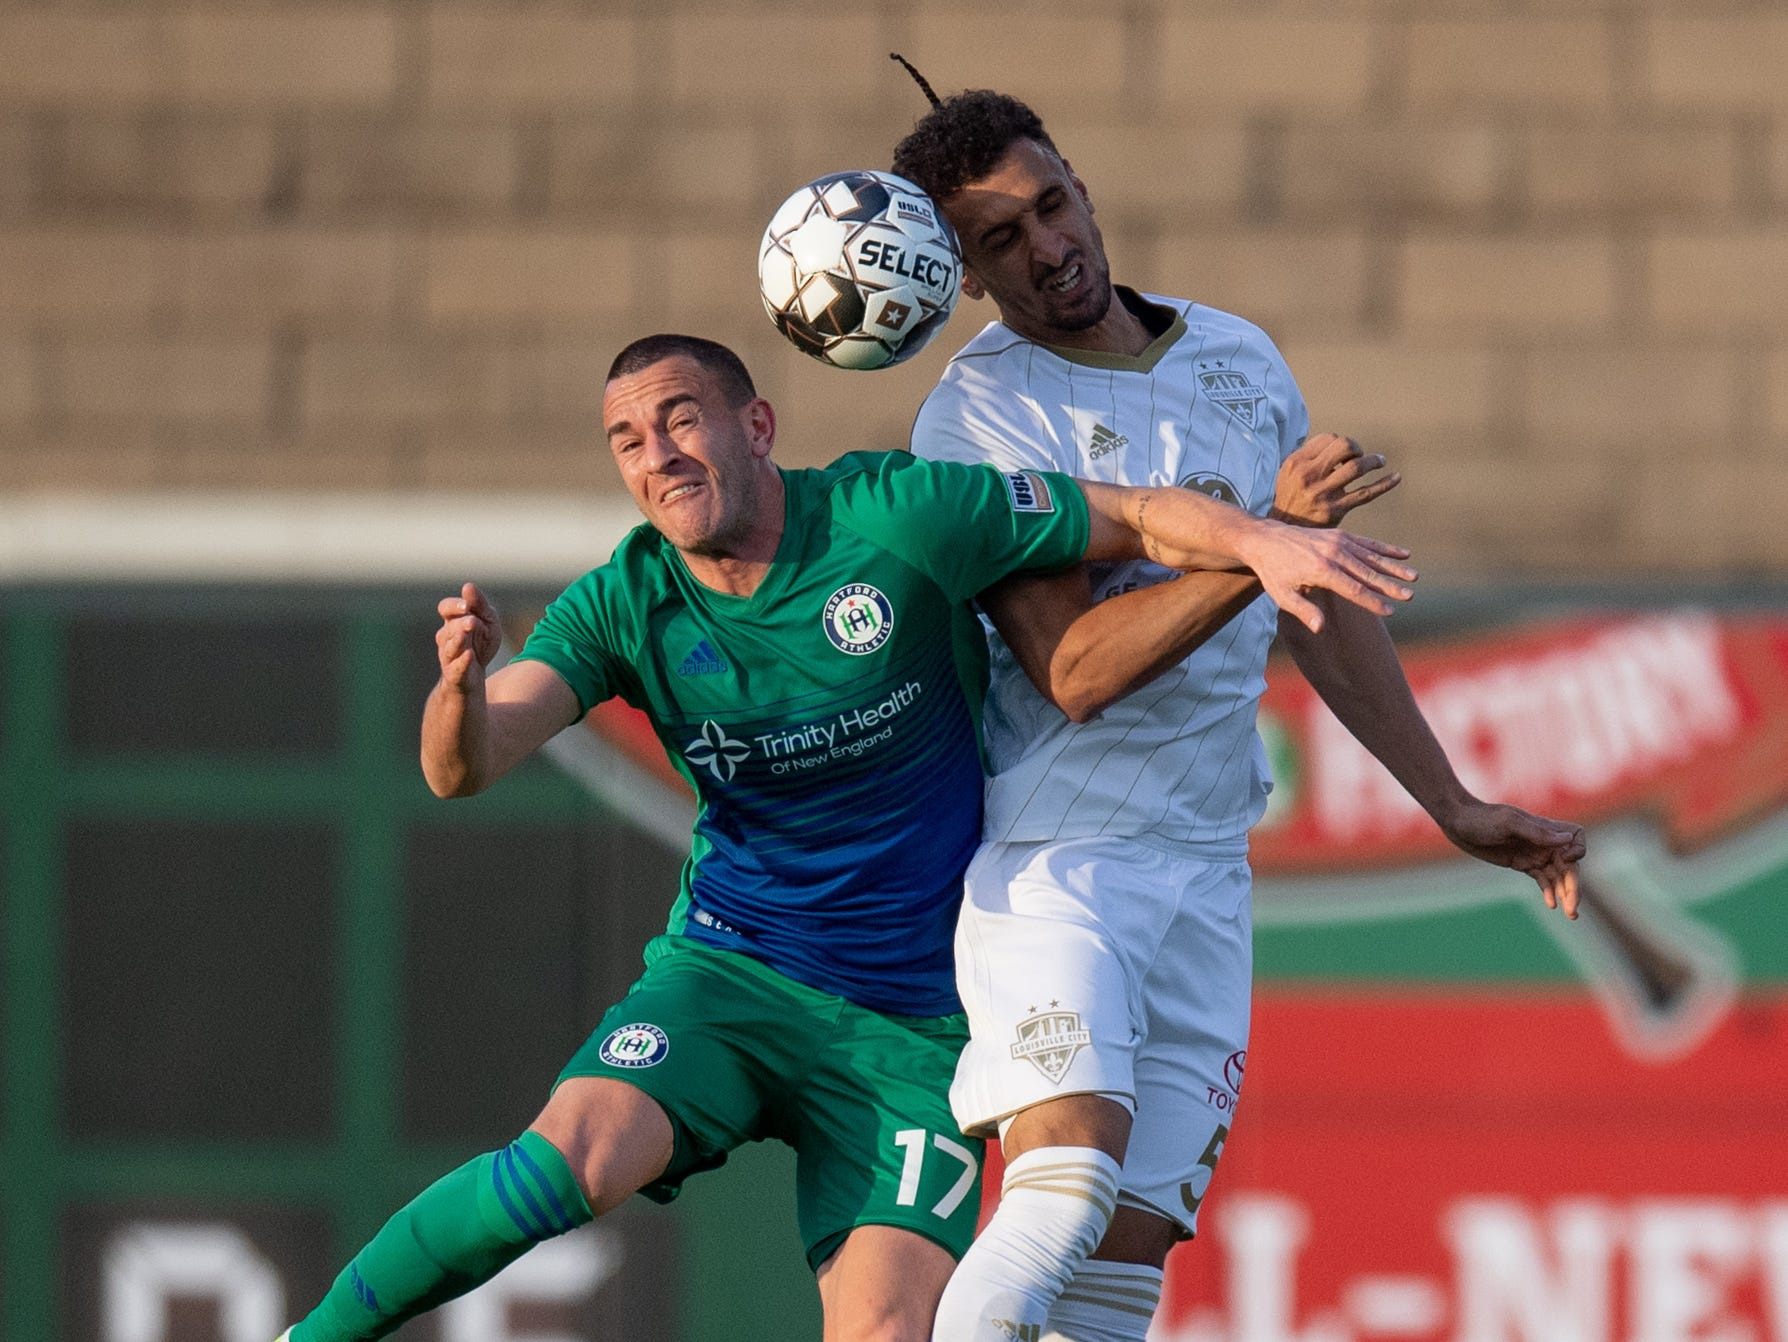 Louisville City FC defender Paco Craig (5) collides with Hartford Athletic Jonathan Broan (17) during the season opening match in Louisville, Ky., Saturday, March 23, 2019.